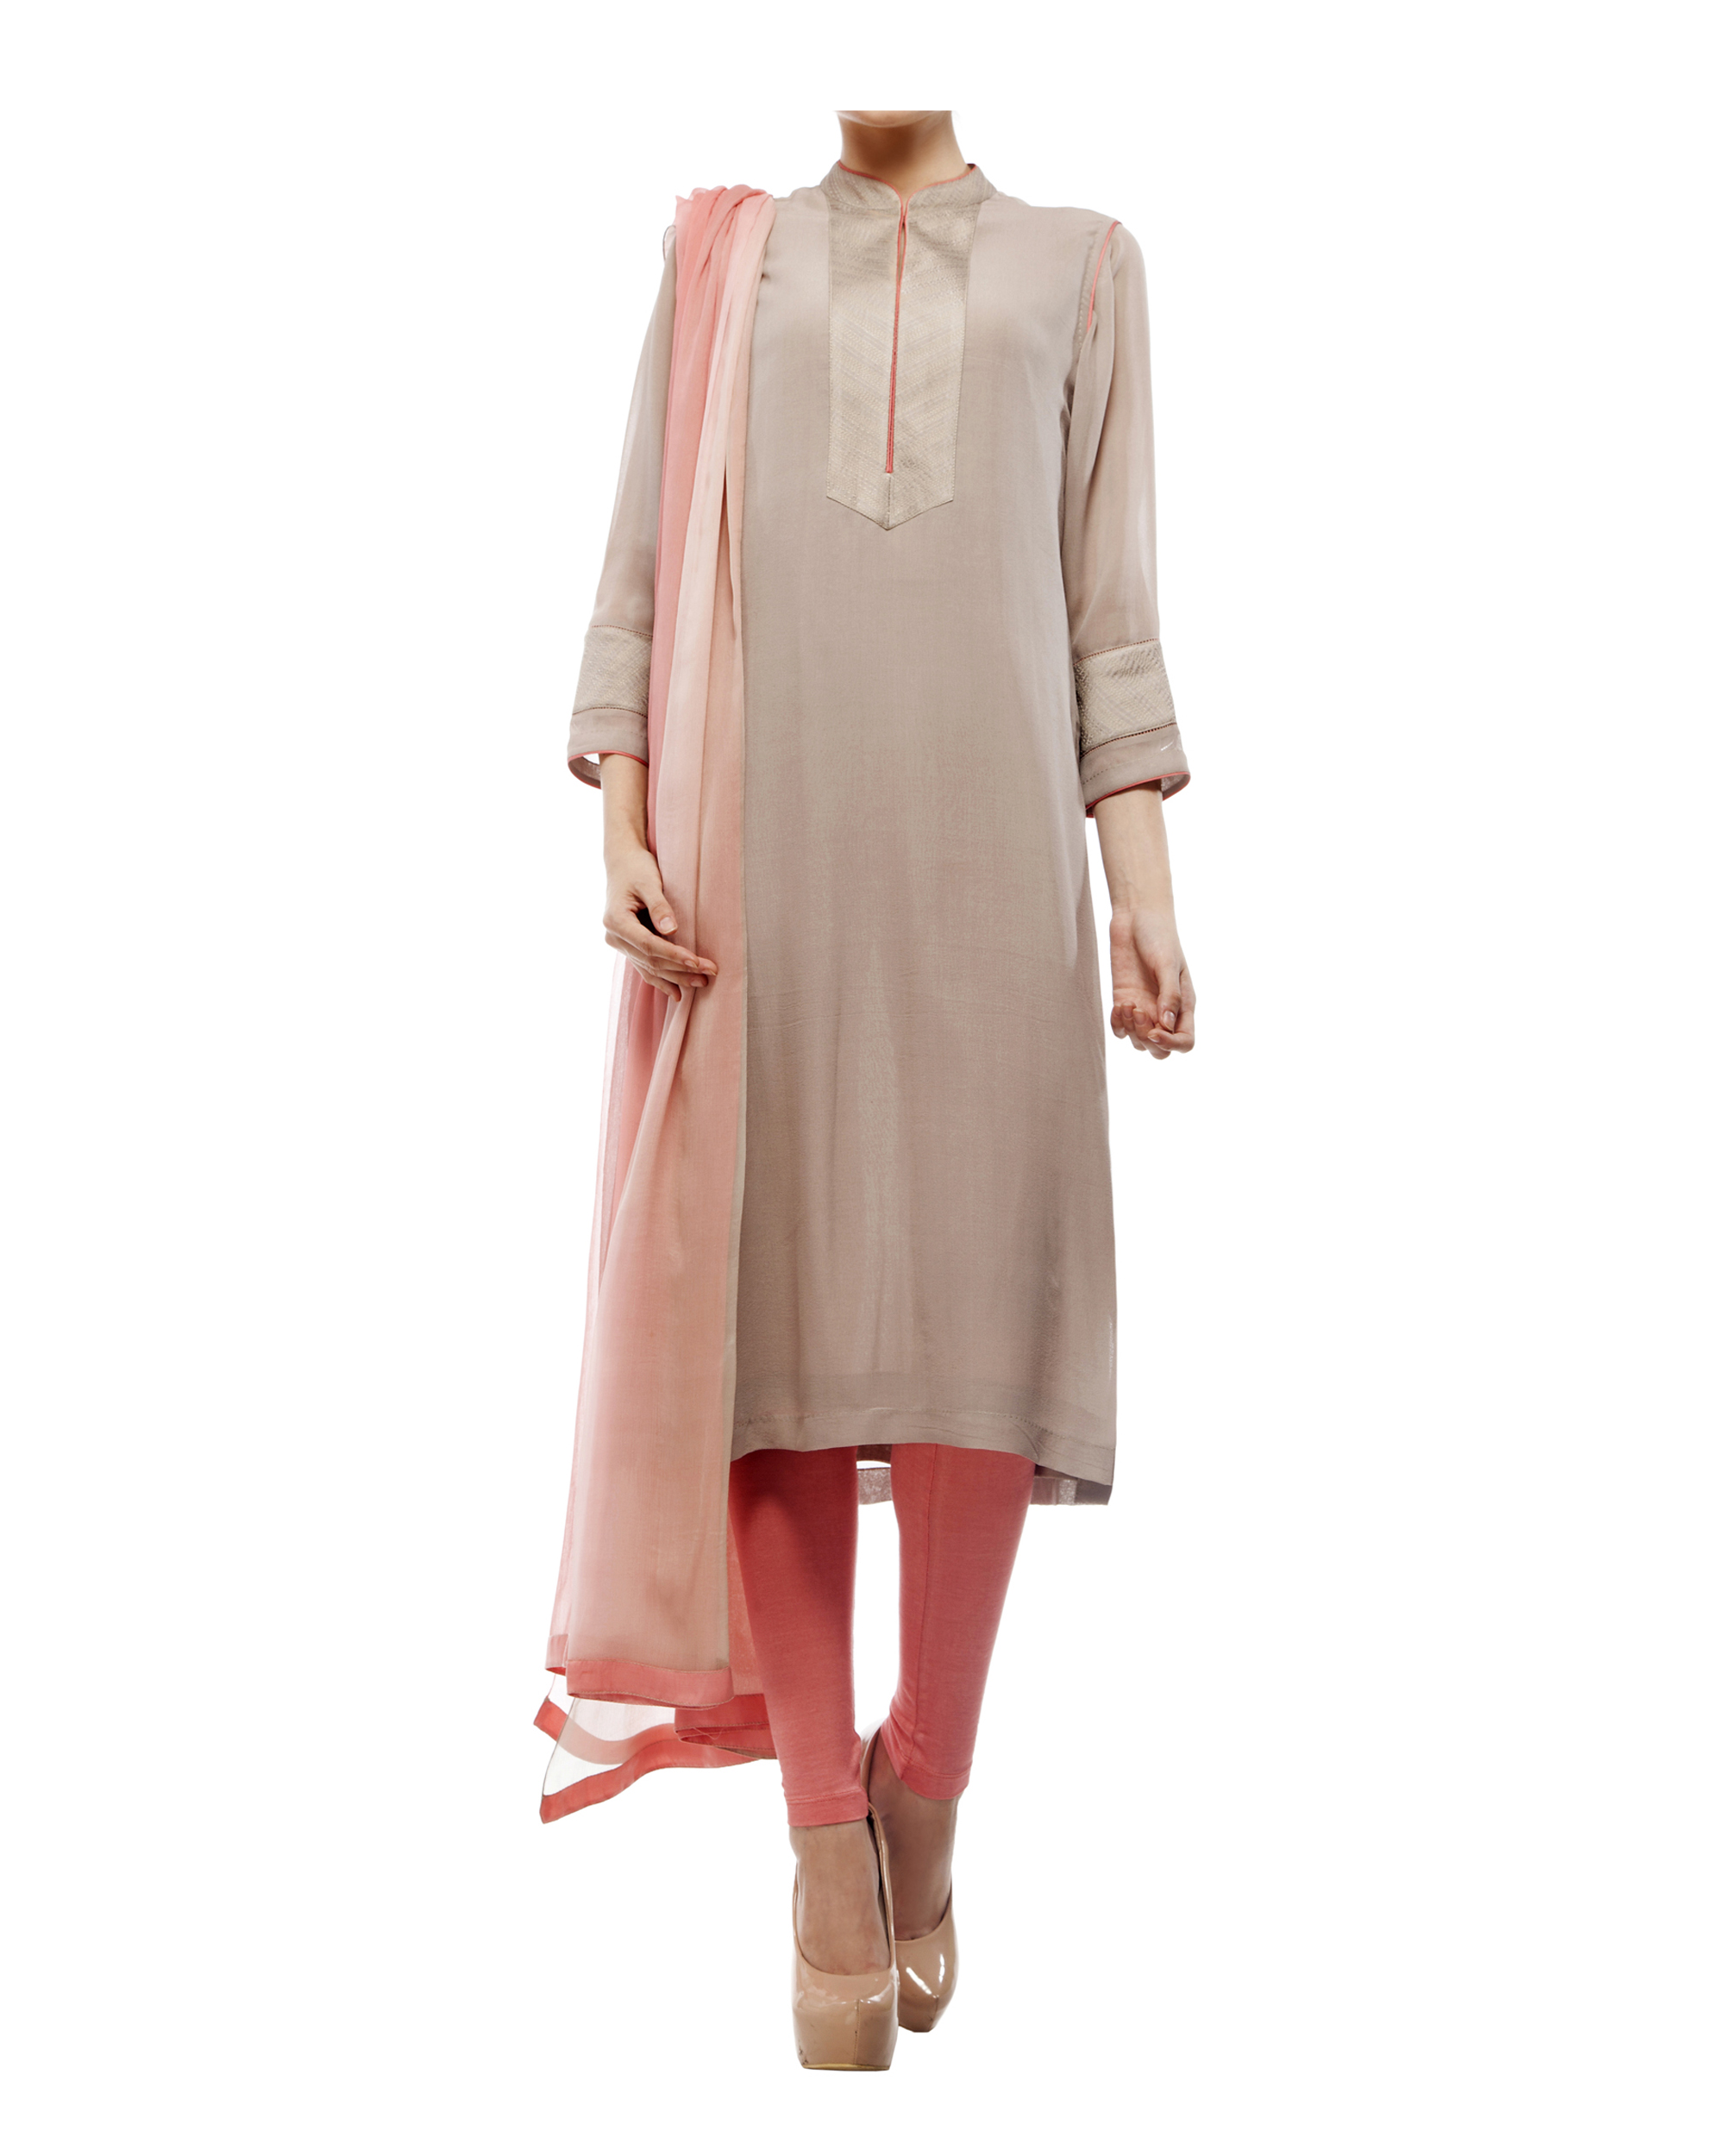 Kantha yoke kurta, comes with a legging and chiffon dupatta